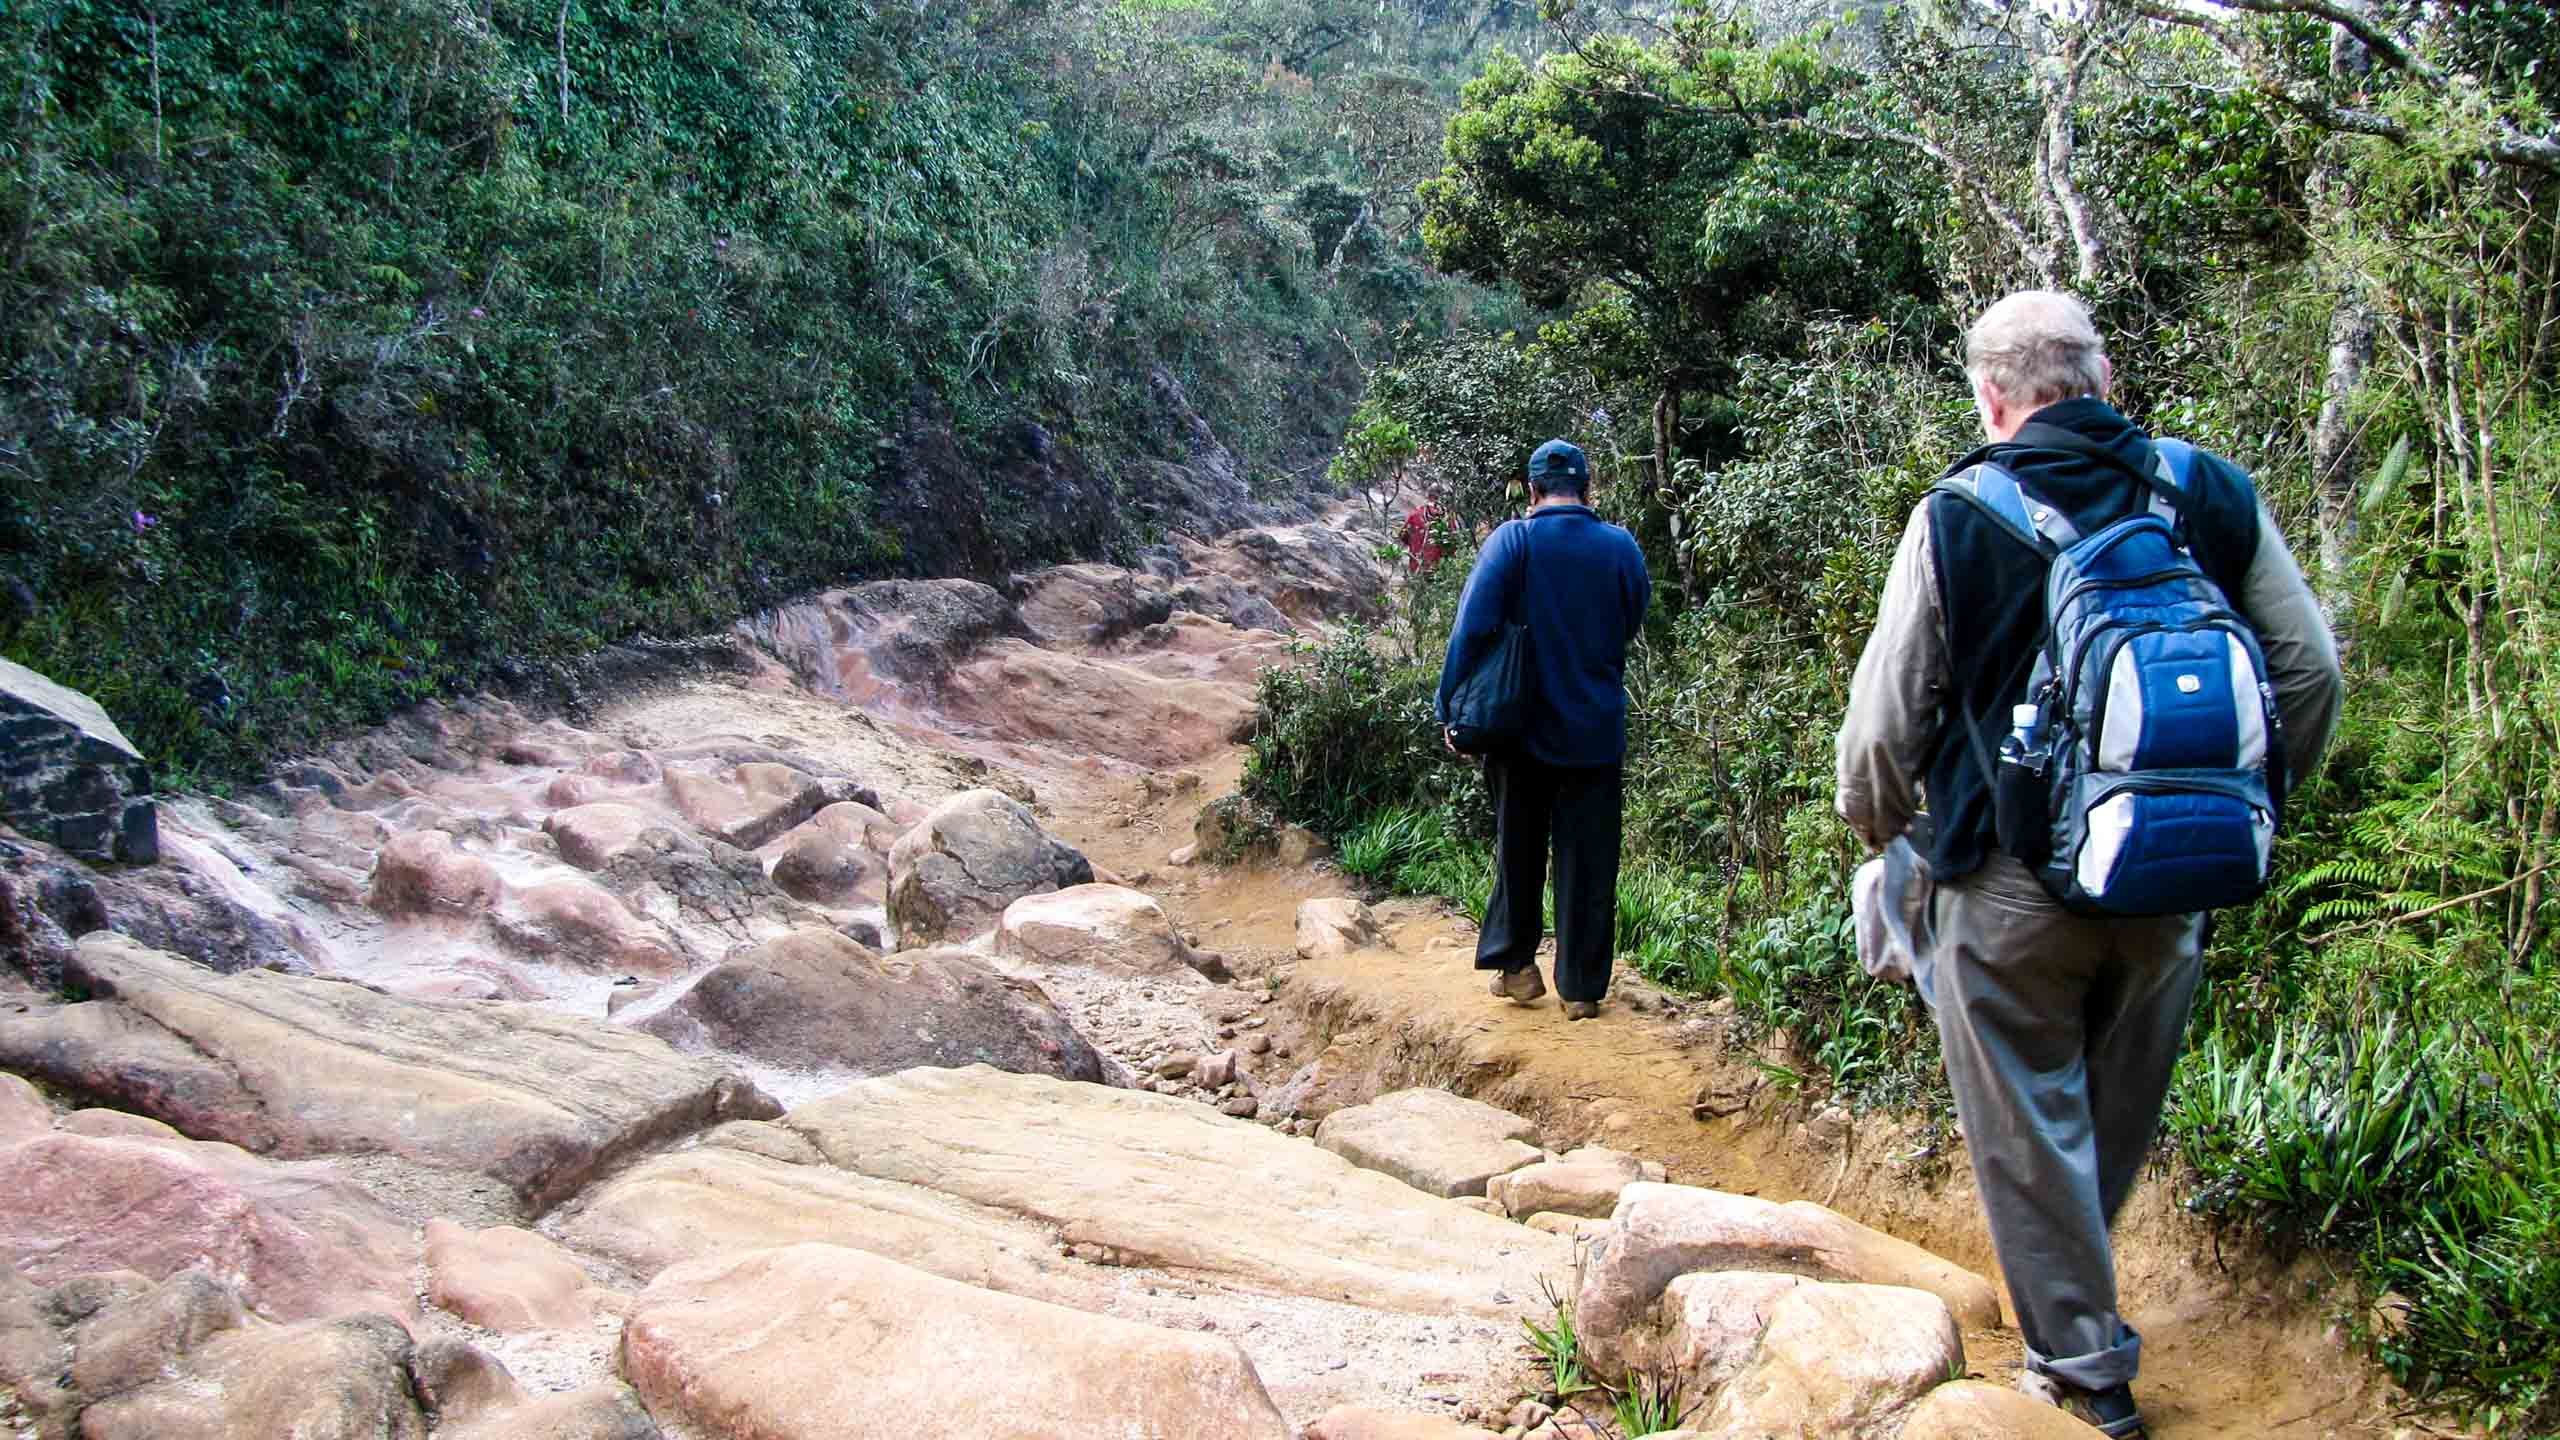 Hikers descend rocky Sri Lanka trail